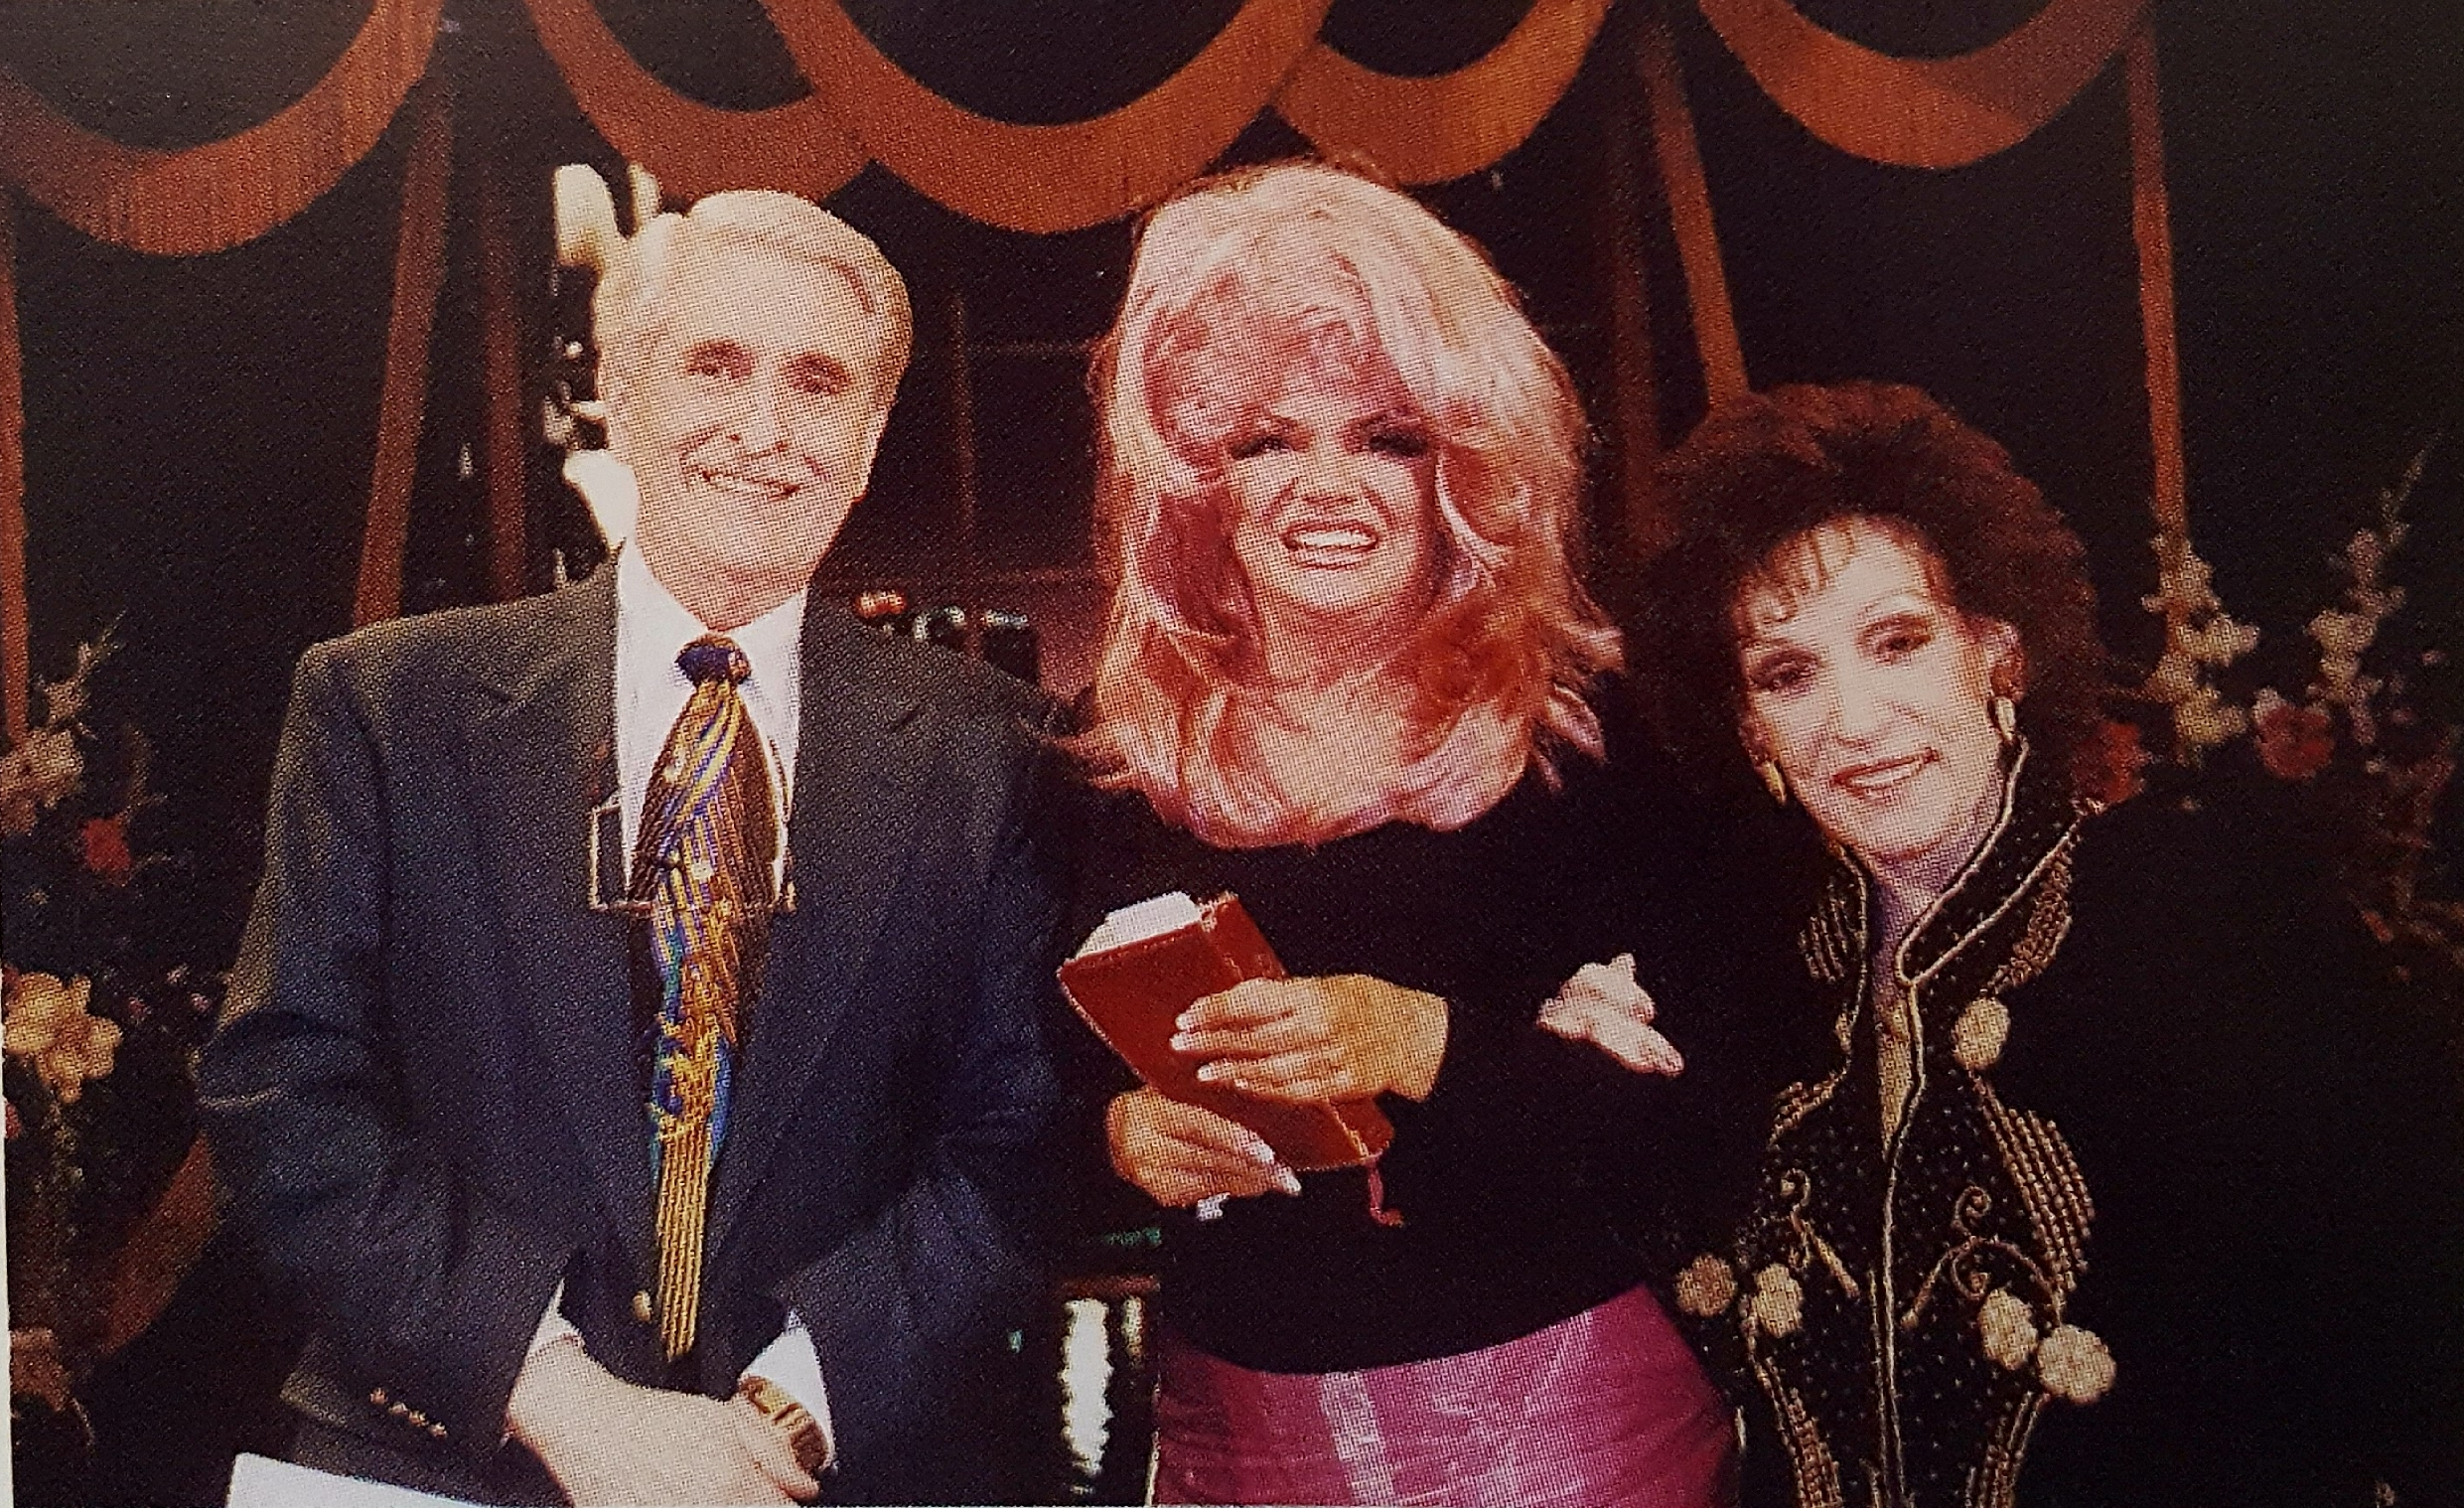 Dottie with Paul & Jan Crouch 1990s